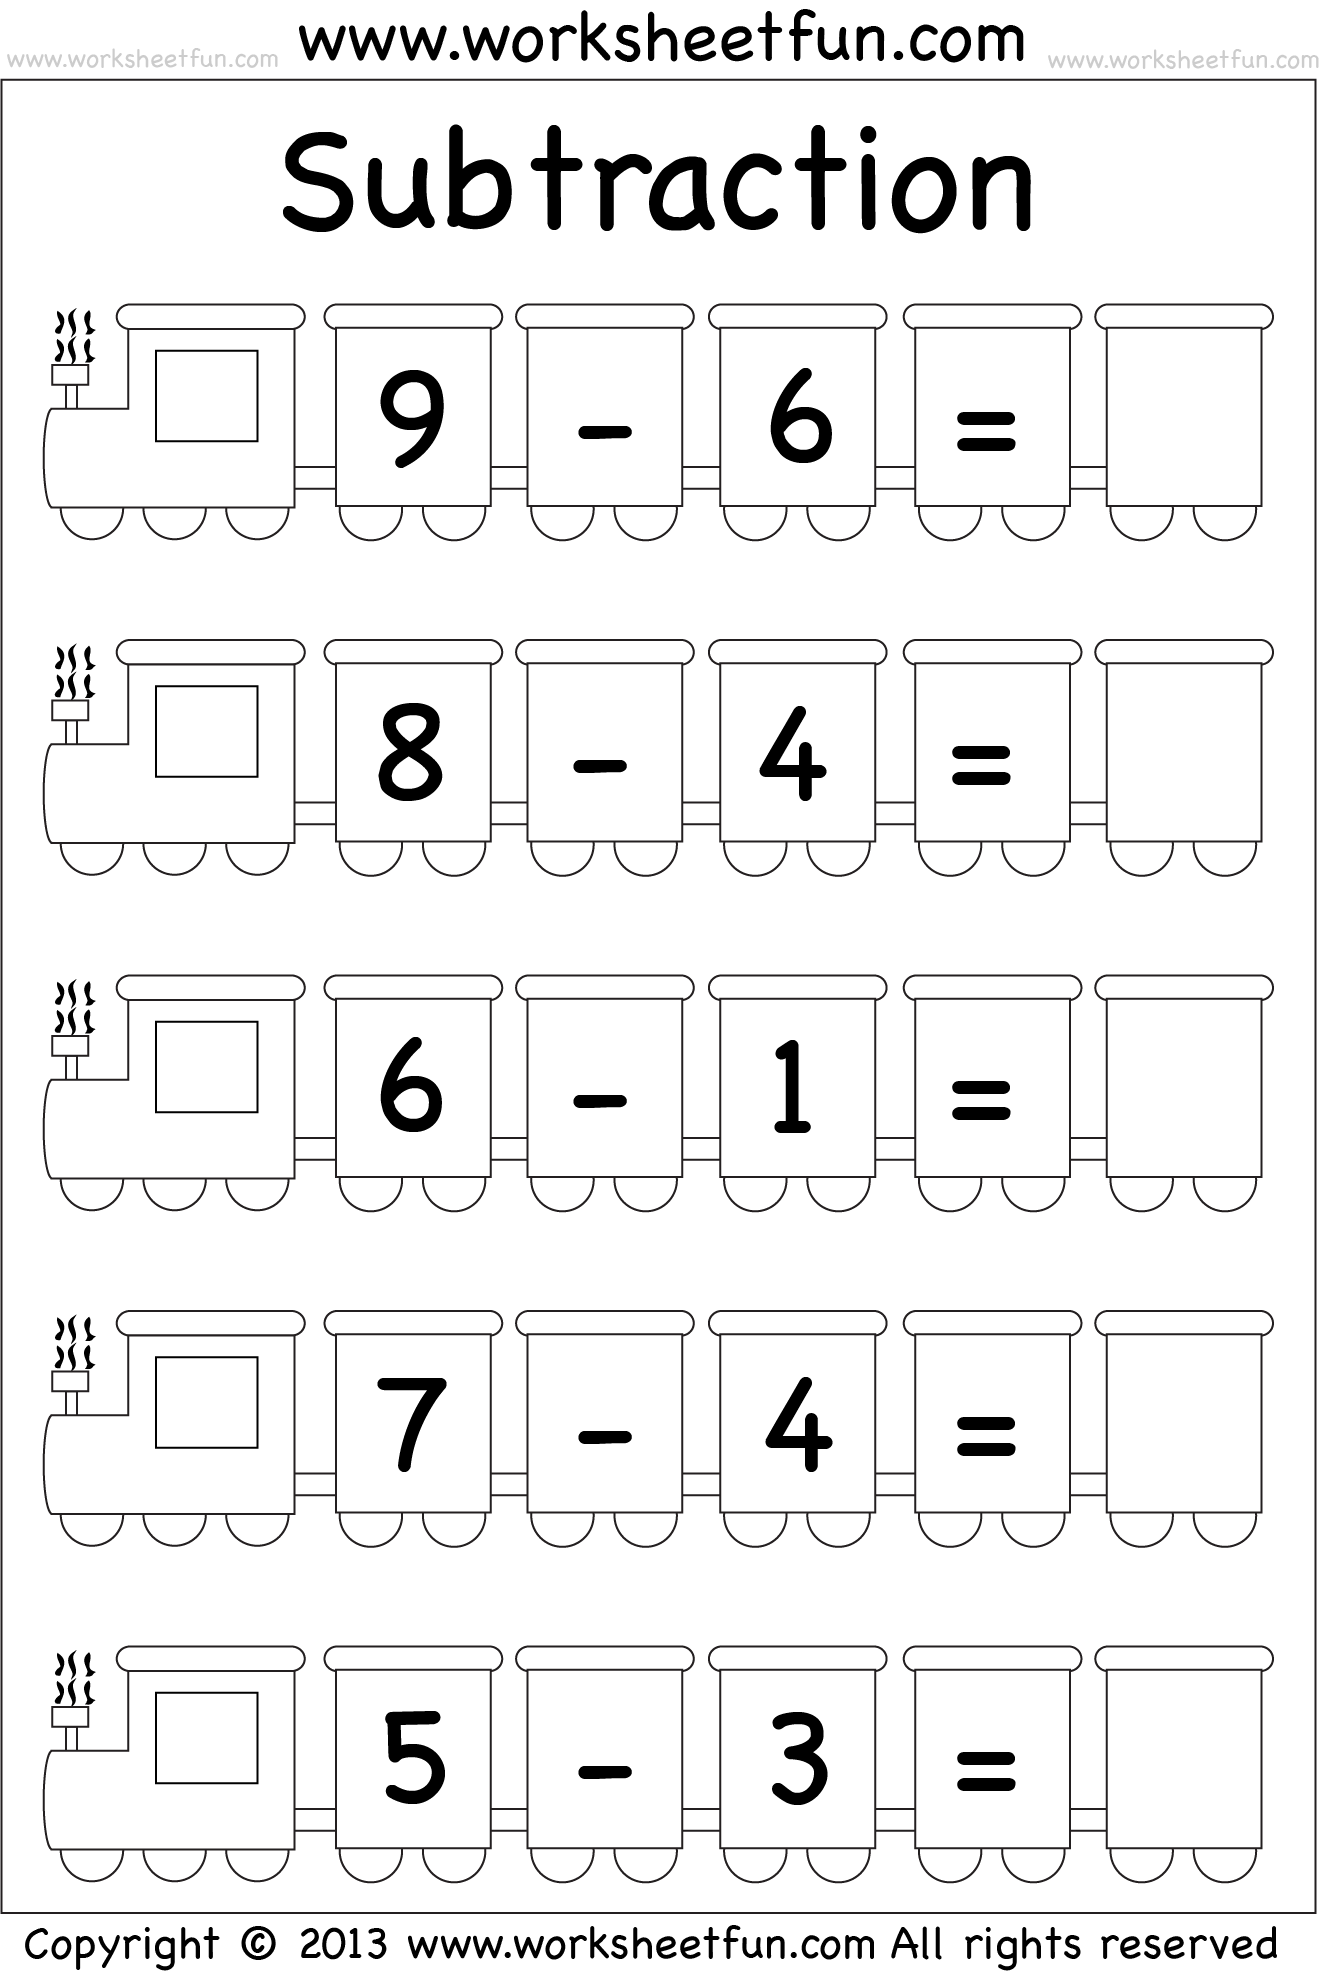 math worksheet : subtraction worksheet  math computation  pinterest  subtraction  : Subtraction Worksheets For Preschool